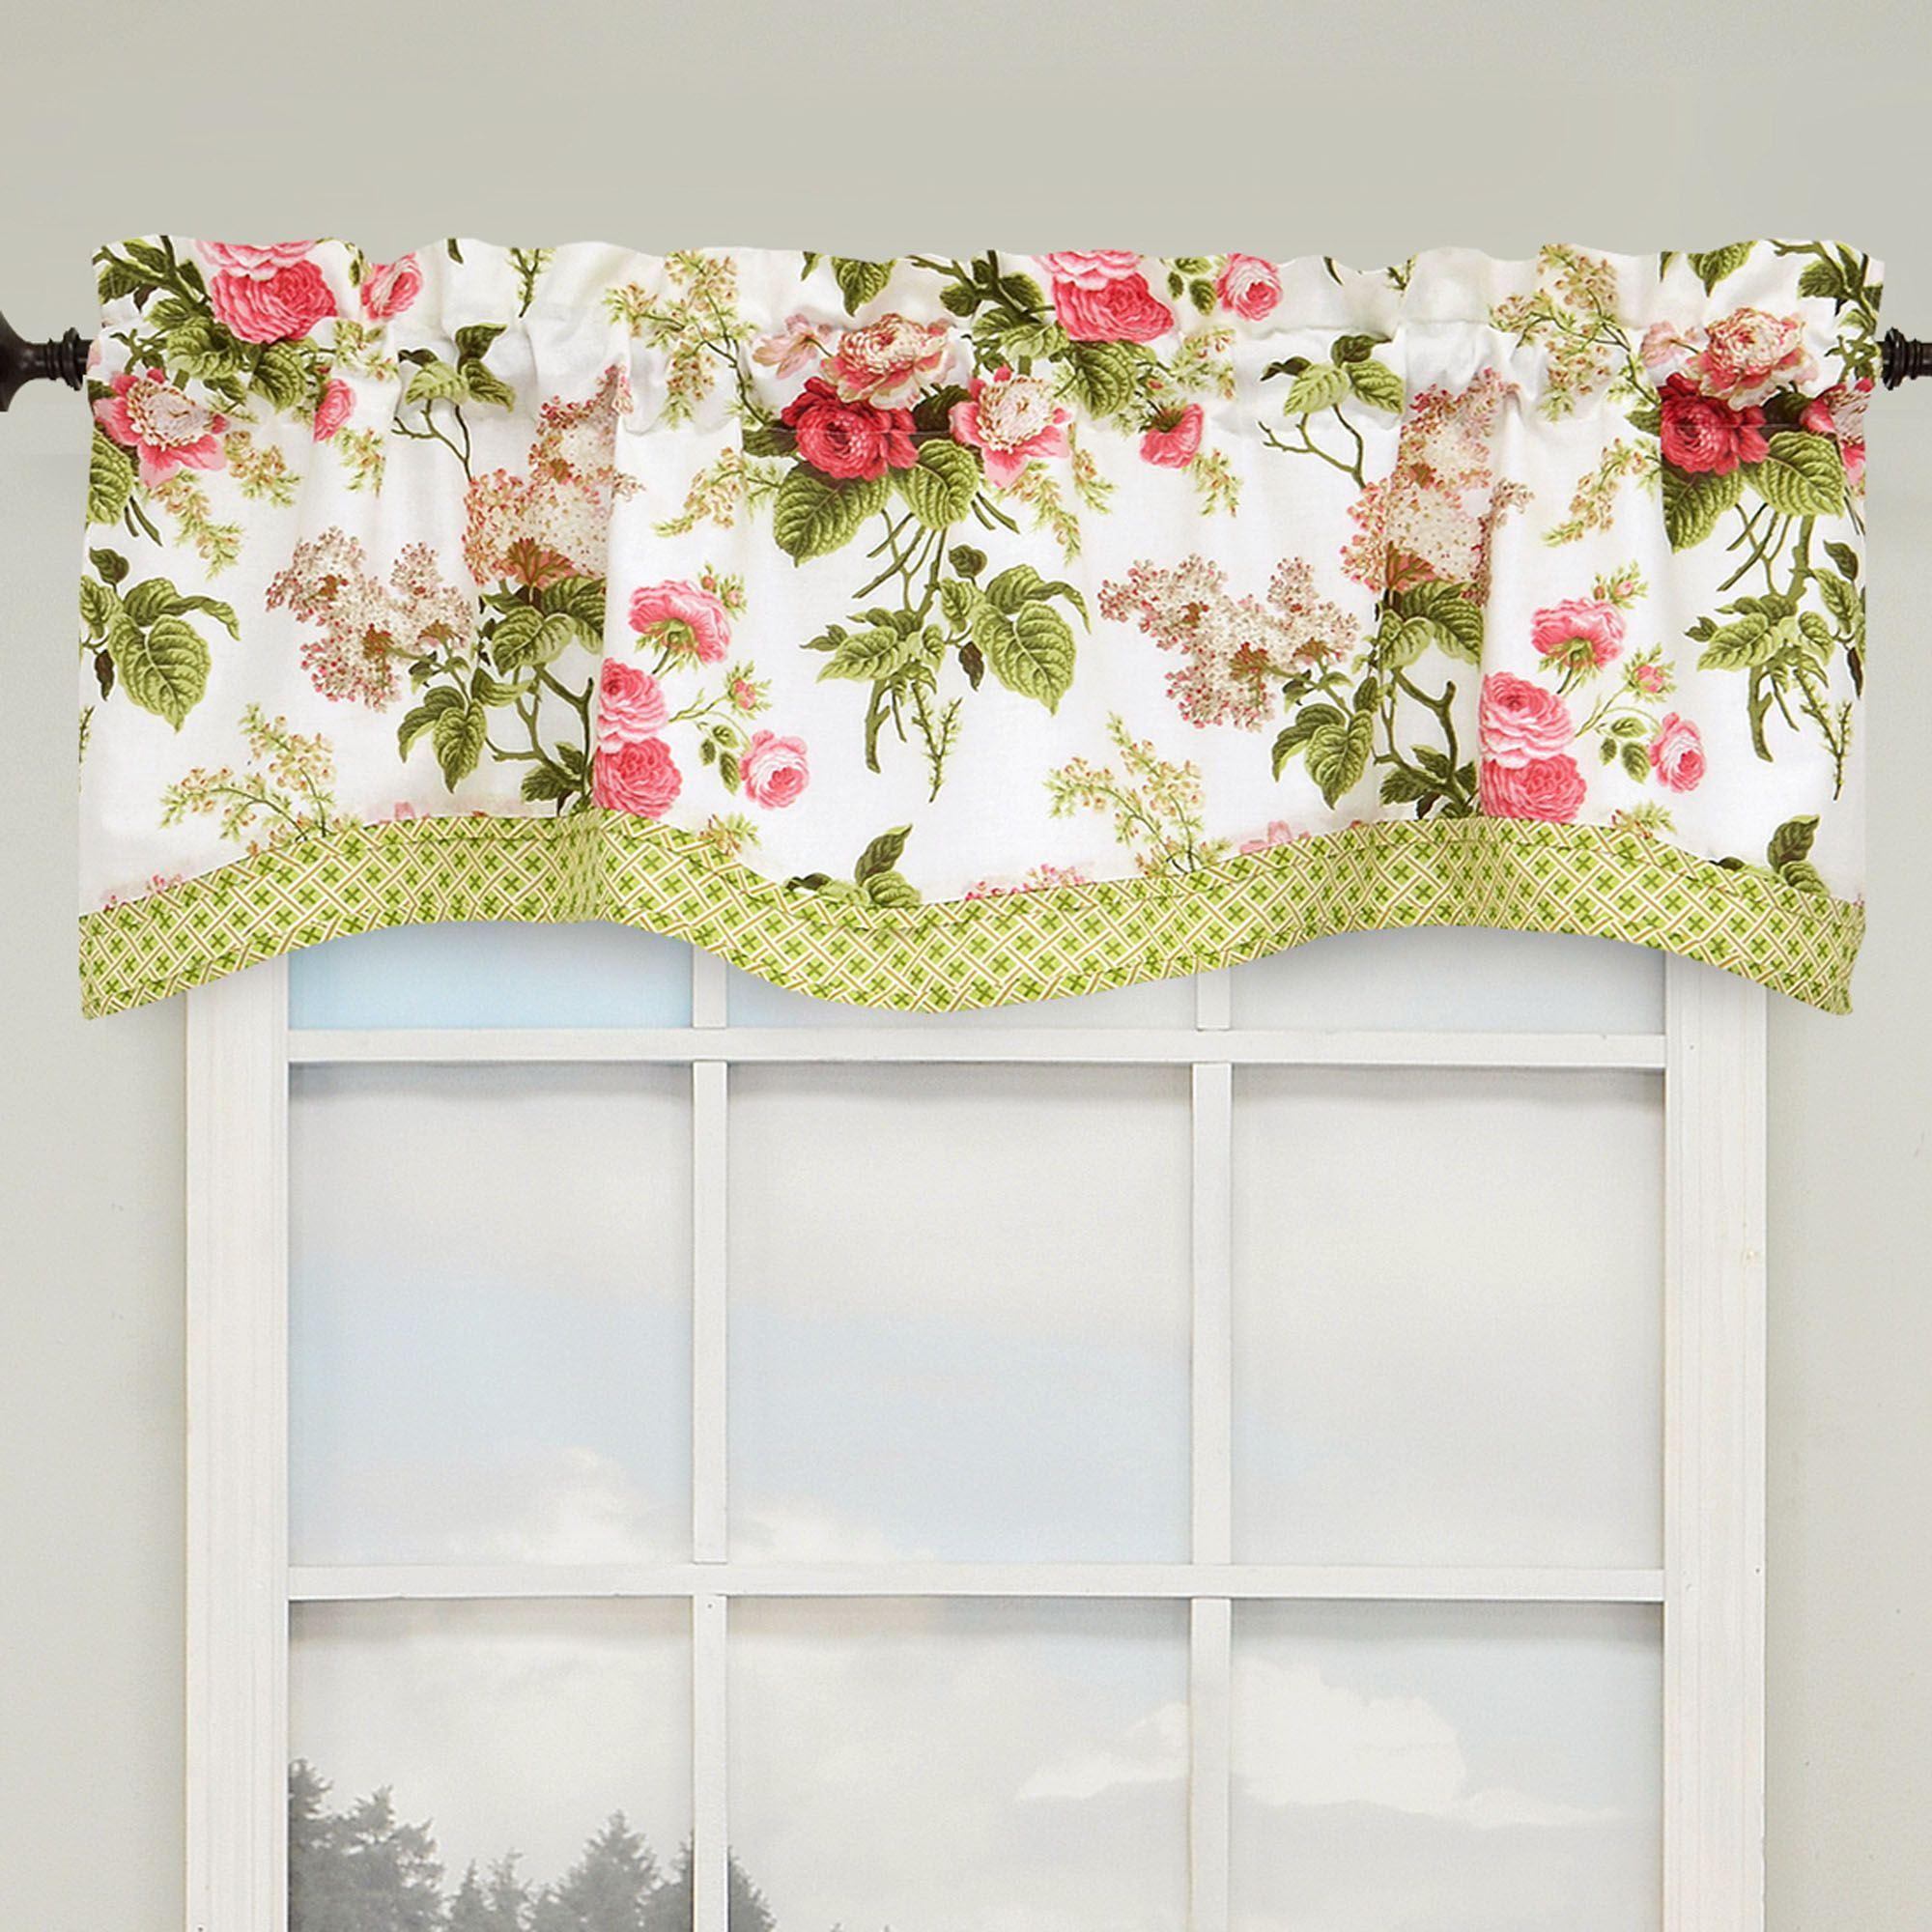 valance interior your jc curtains glamorous for valances penny with inspiration house waverly